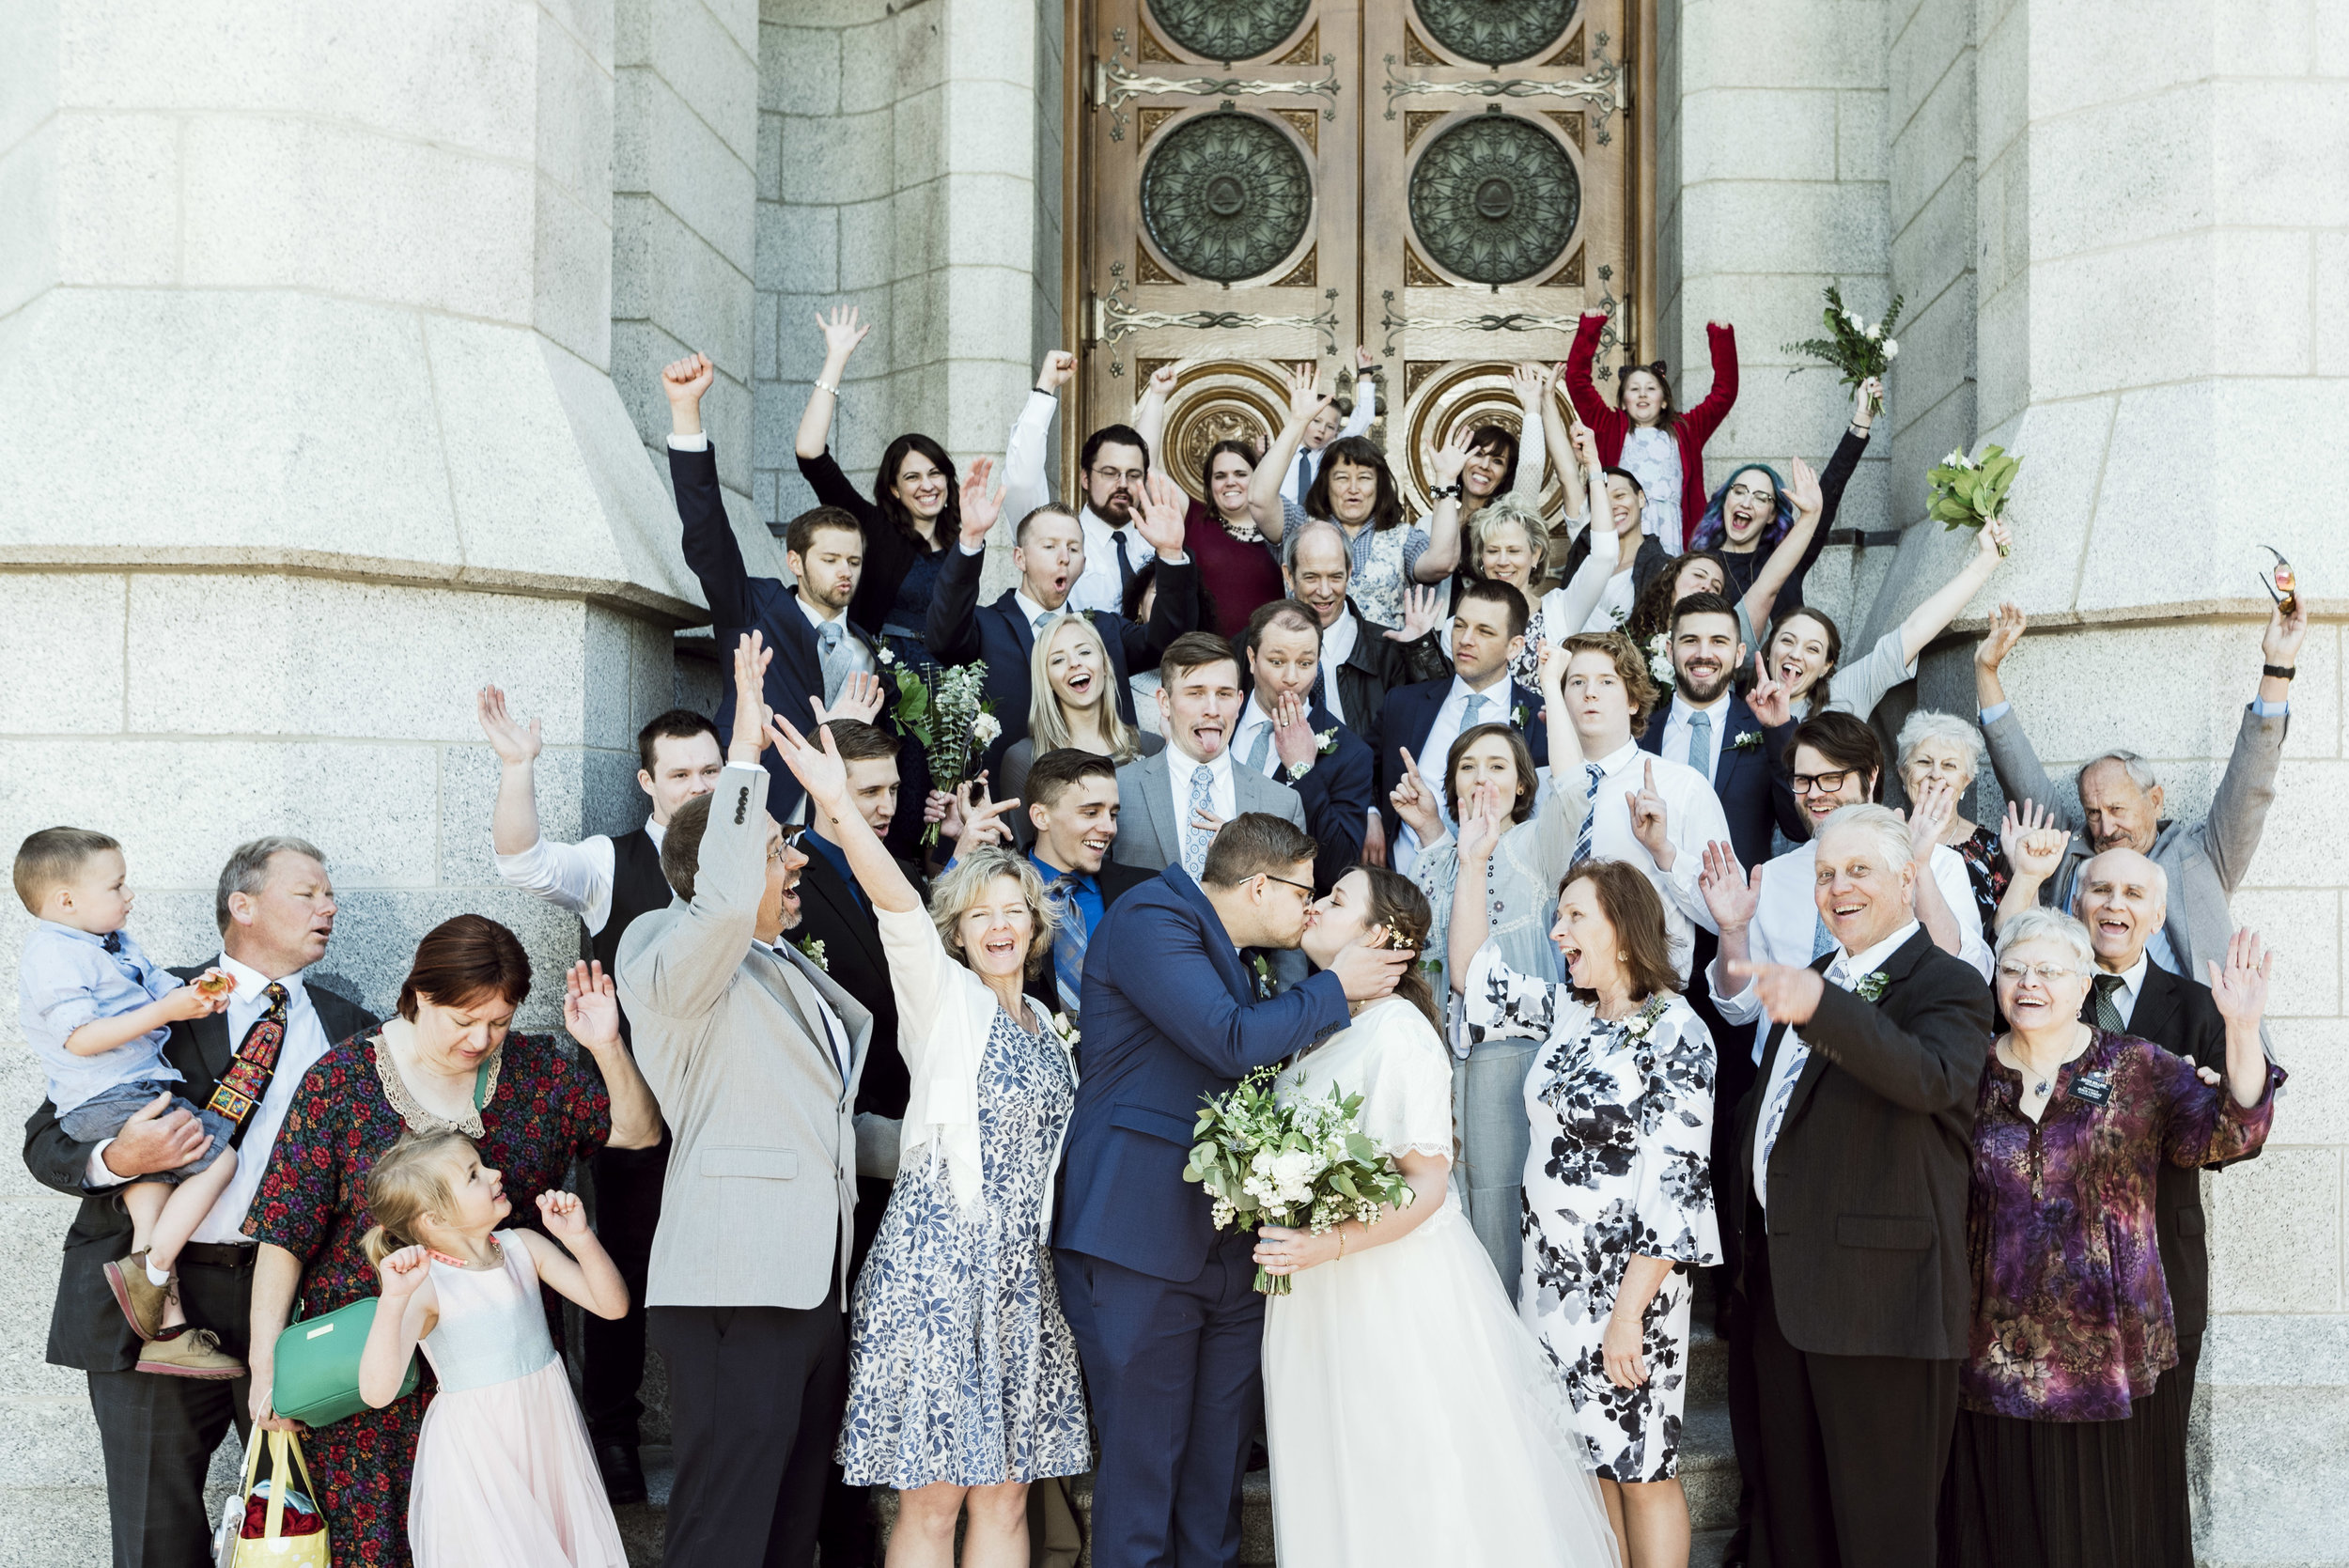 salt lake temple wedding_alyssa sorenson-23.jpg